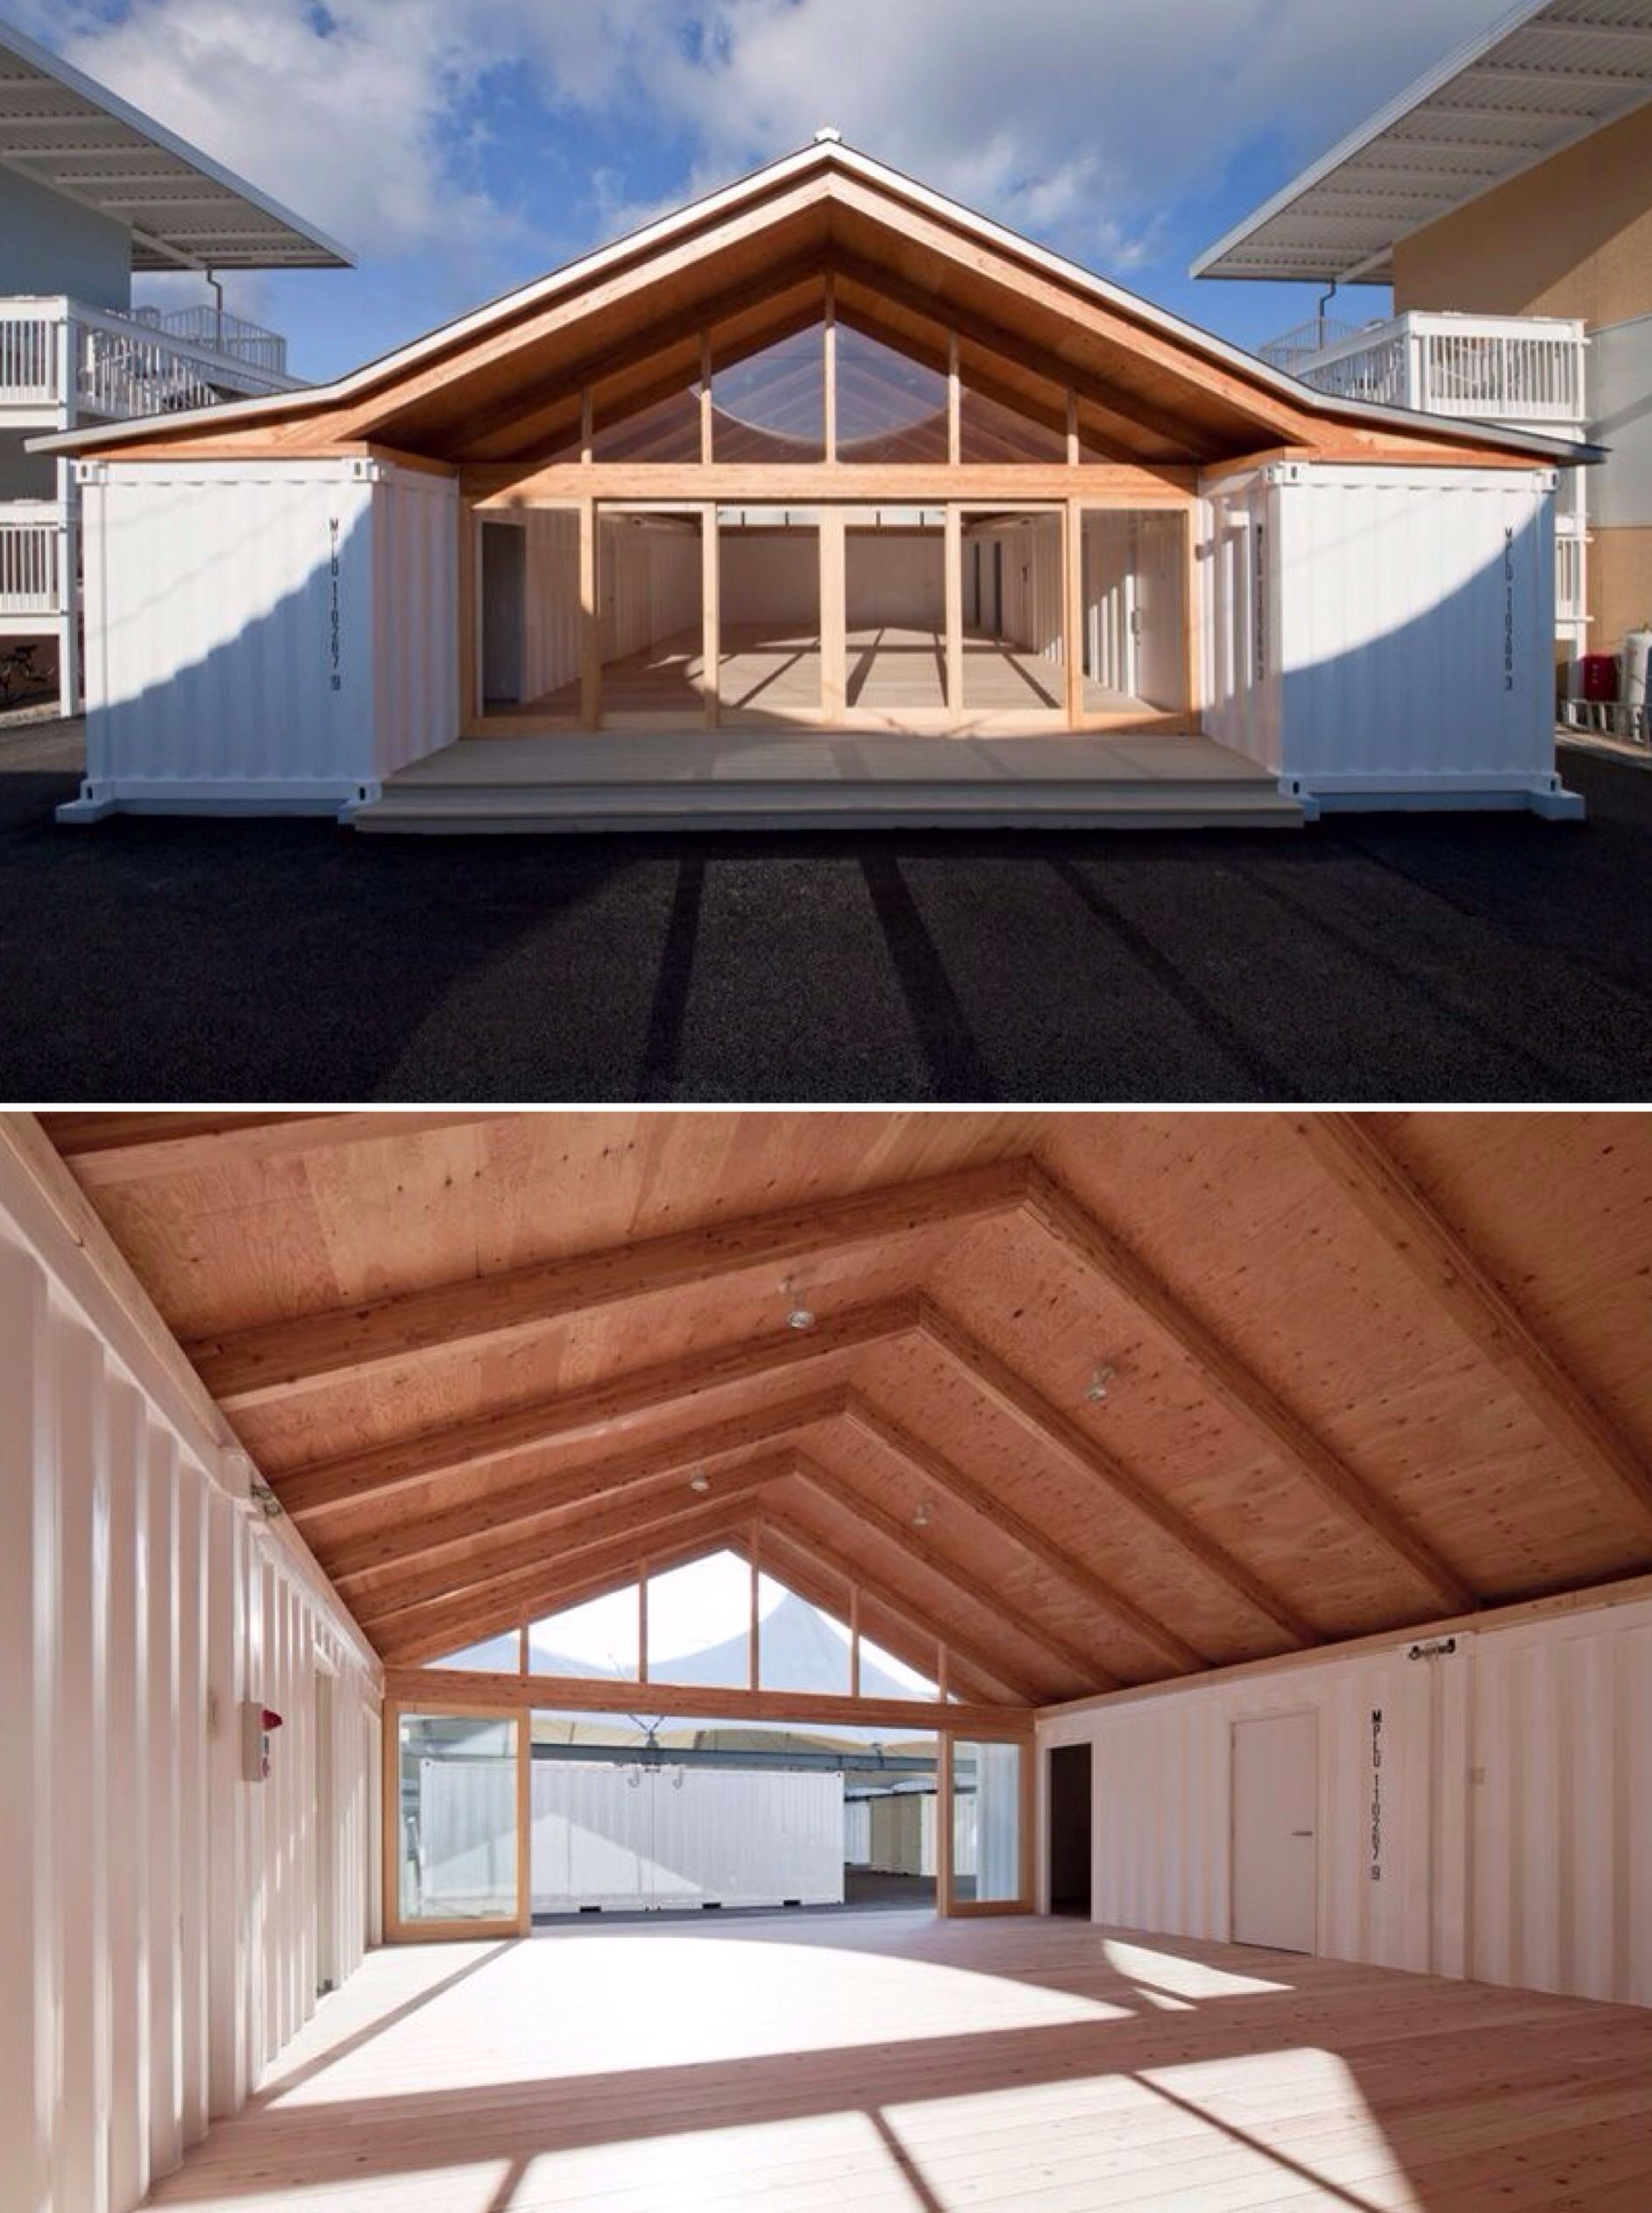 shigeru ban onagawa temporary container housing community